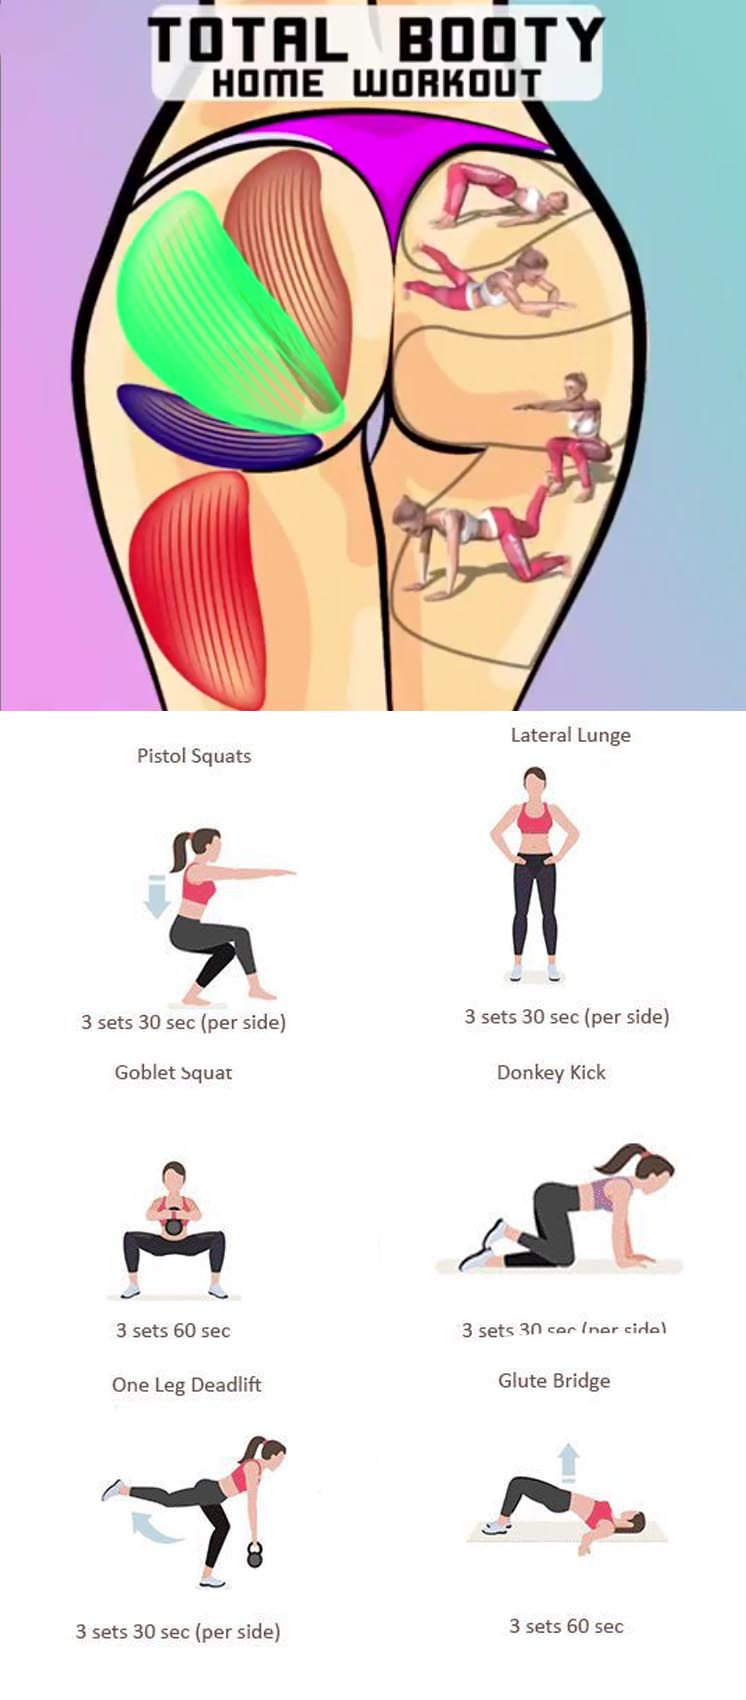 Total Booty Home Workout